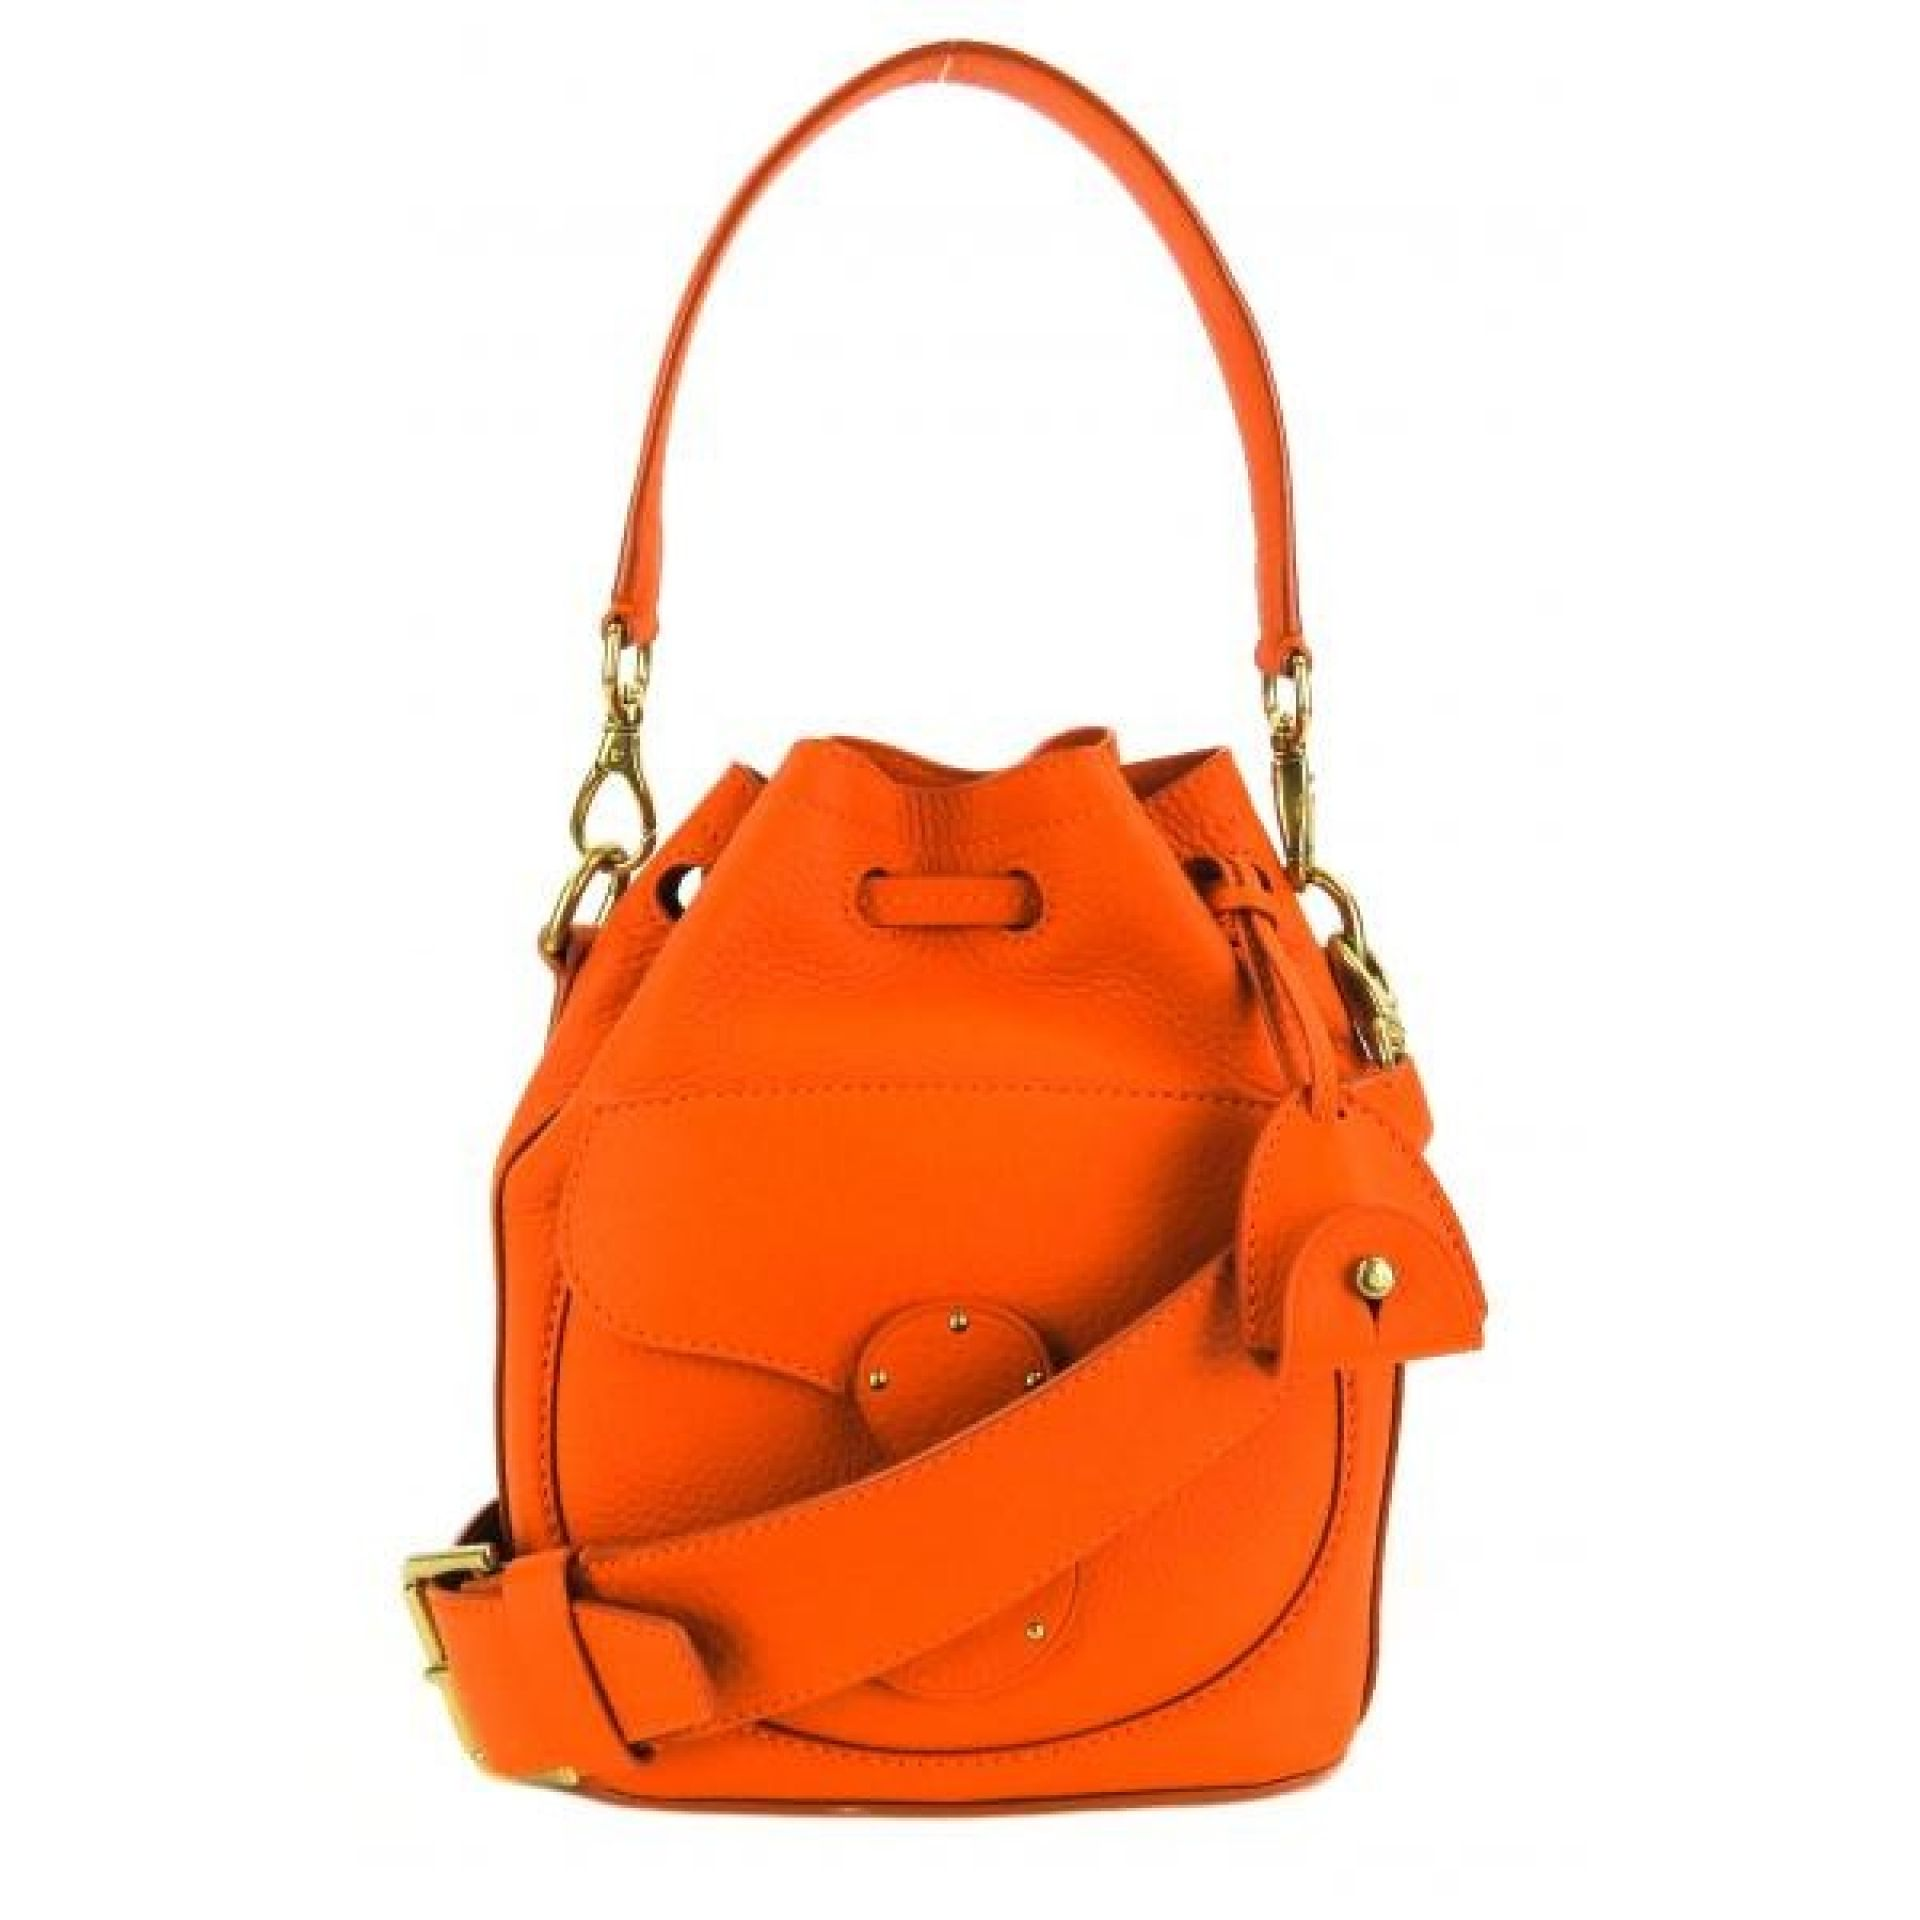 Ralph Lauren Orange Leather Small Ricky Drawstring Bucket Crossbody Bag